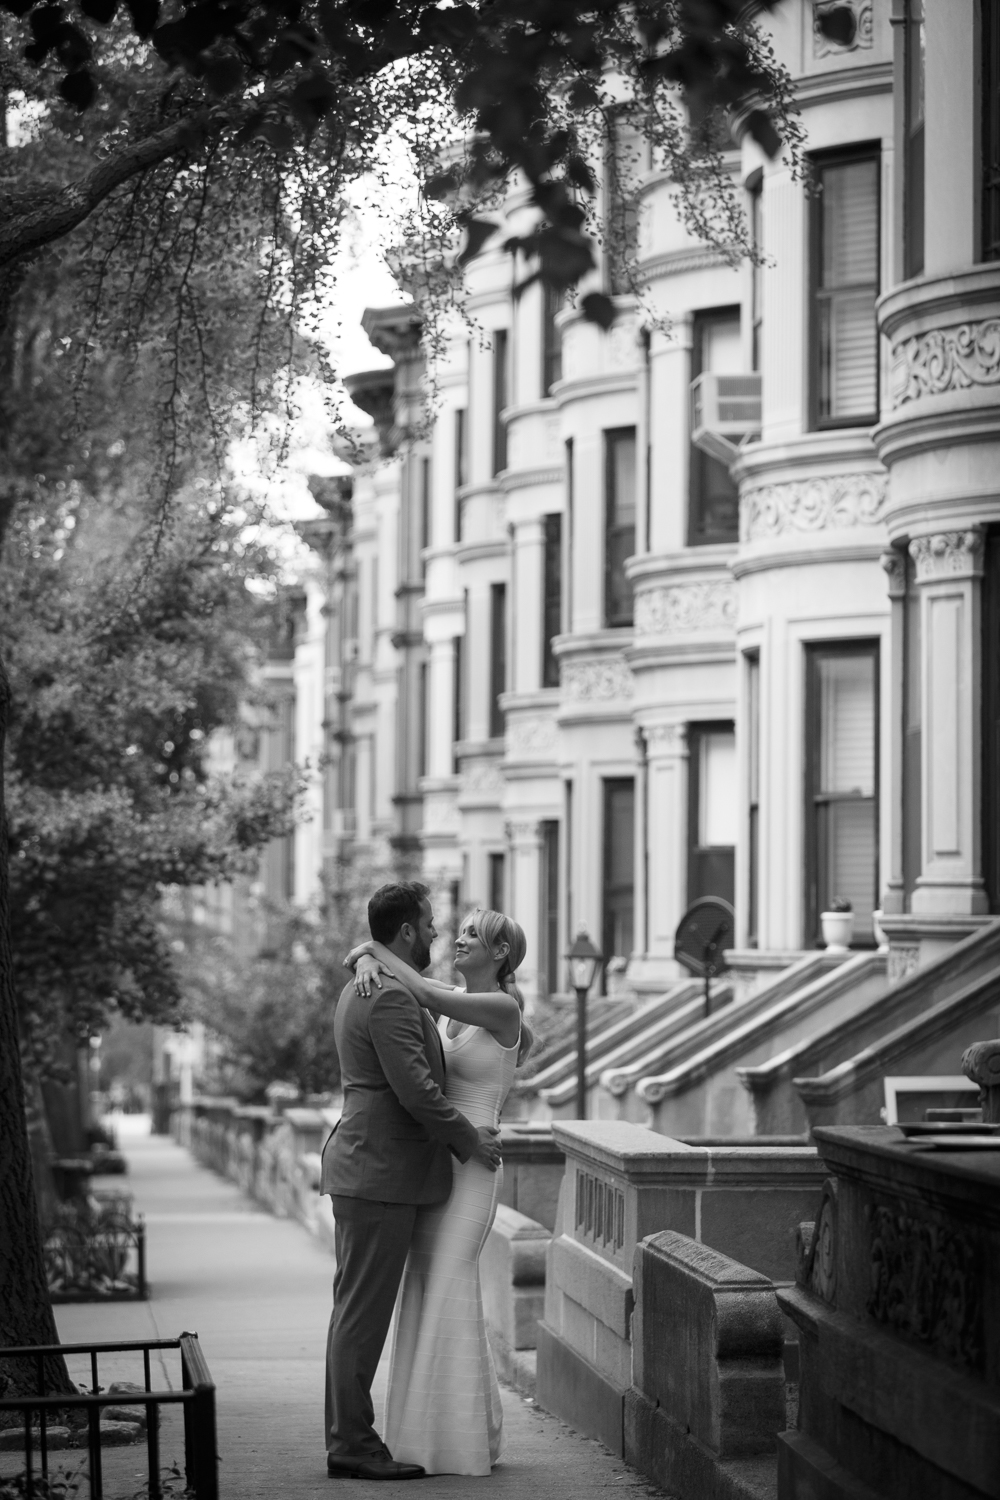 Brooklyn Wedding Photographer _ Jonathan Heisler _ 5112019 _020.jpg